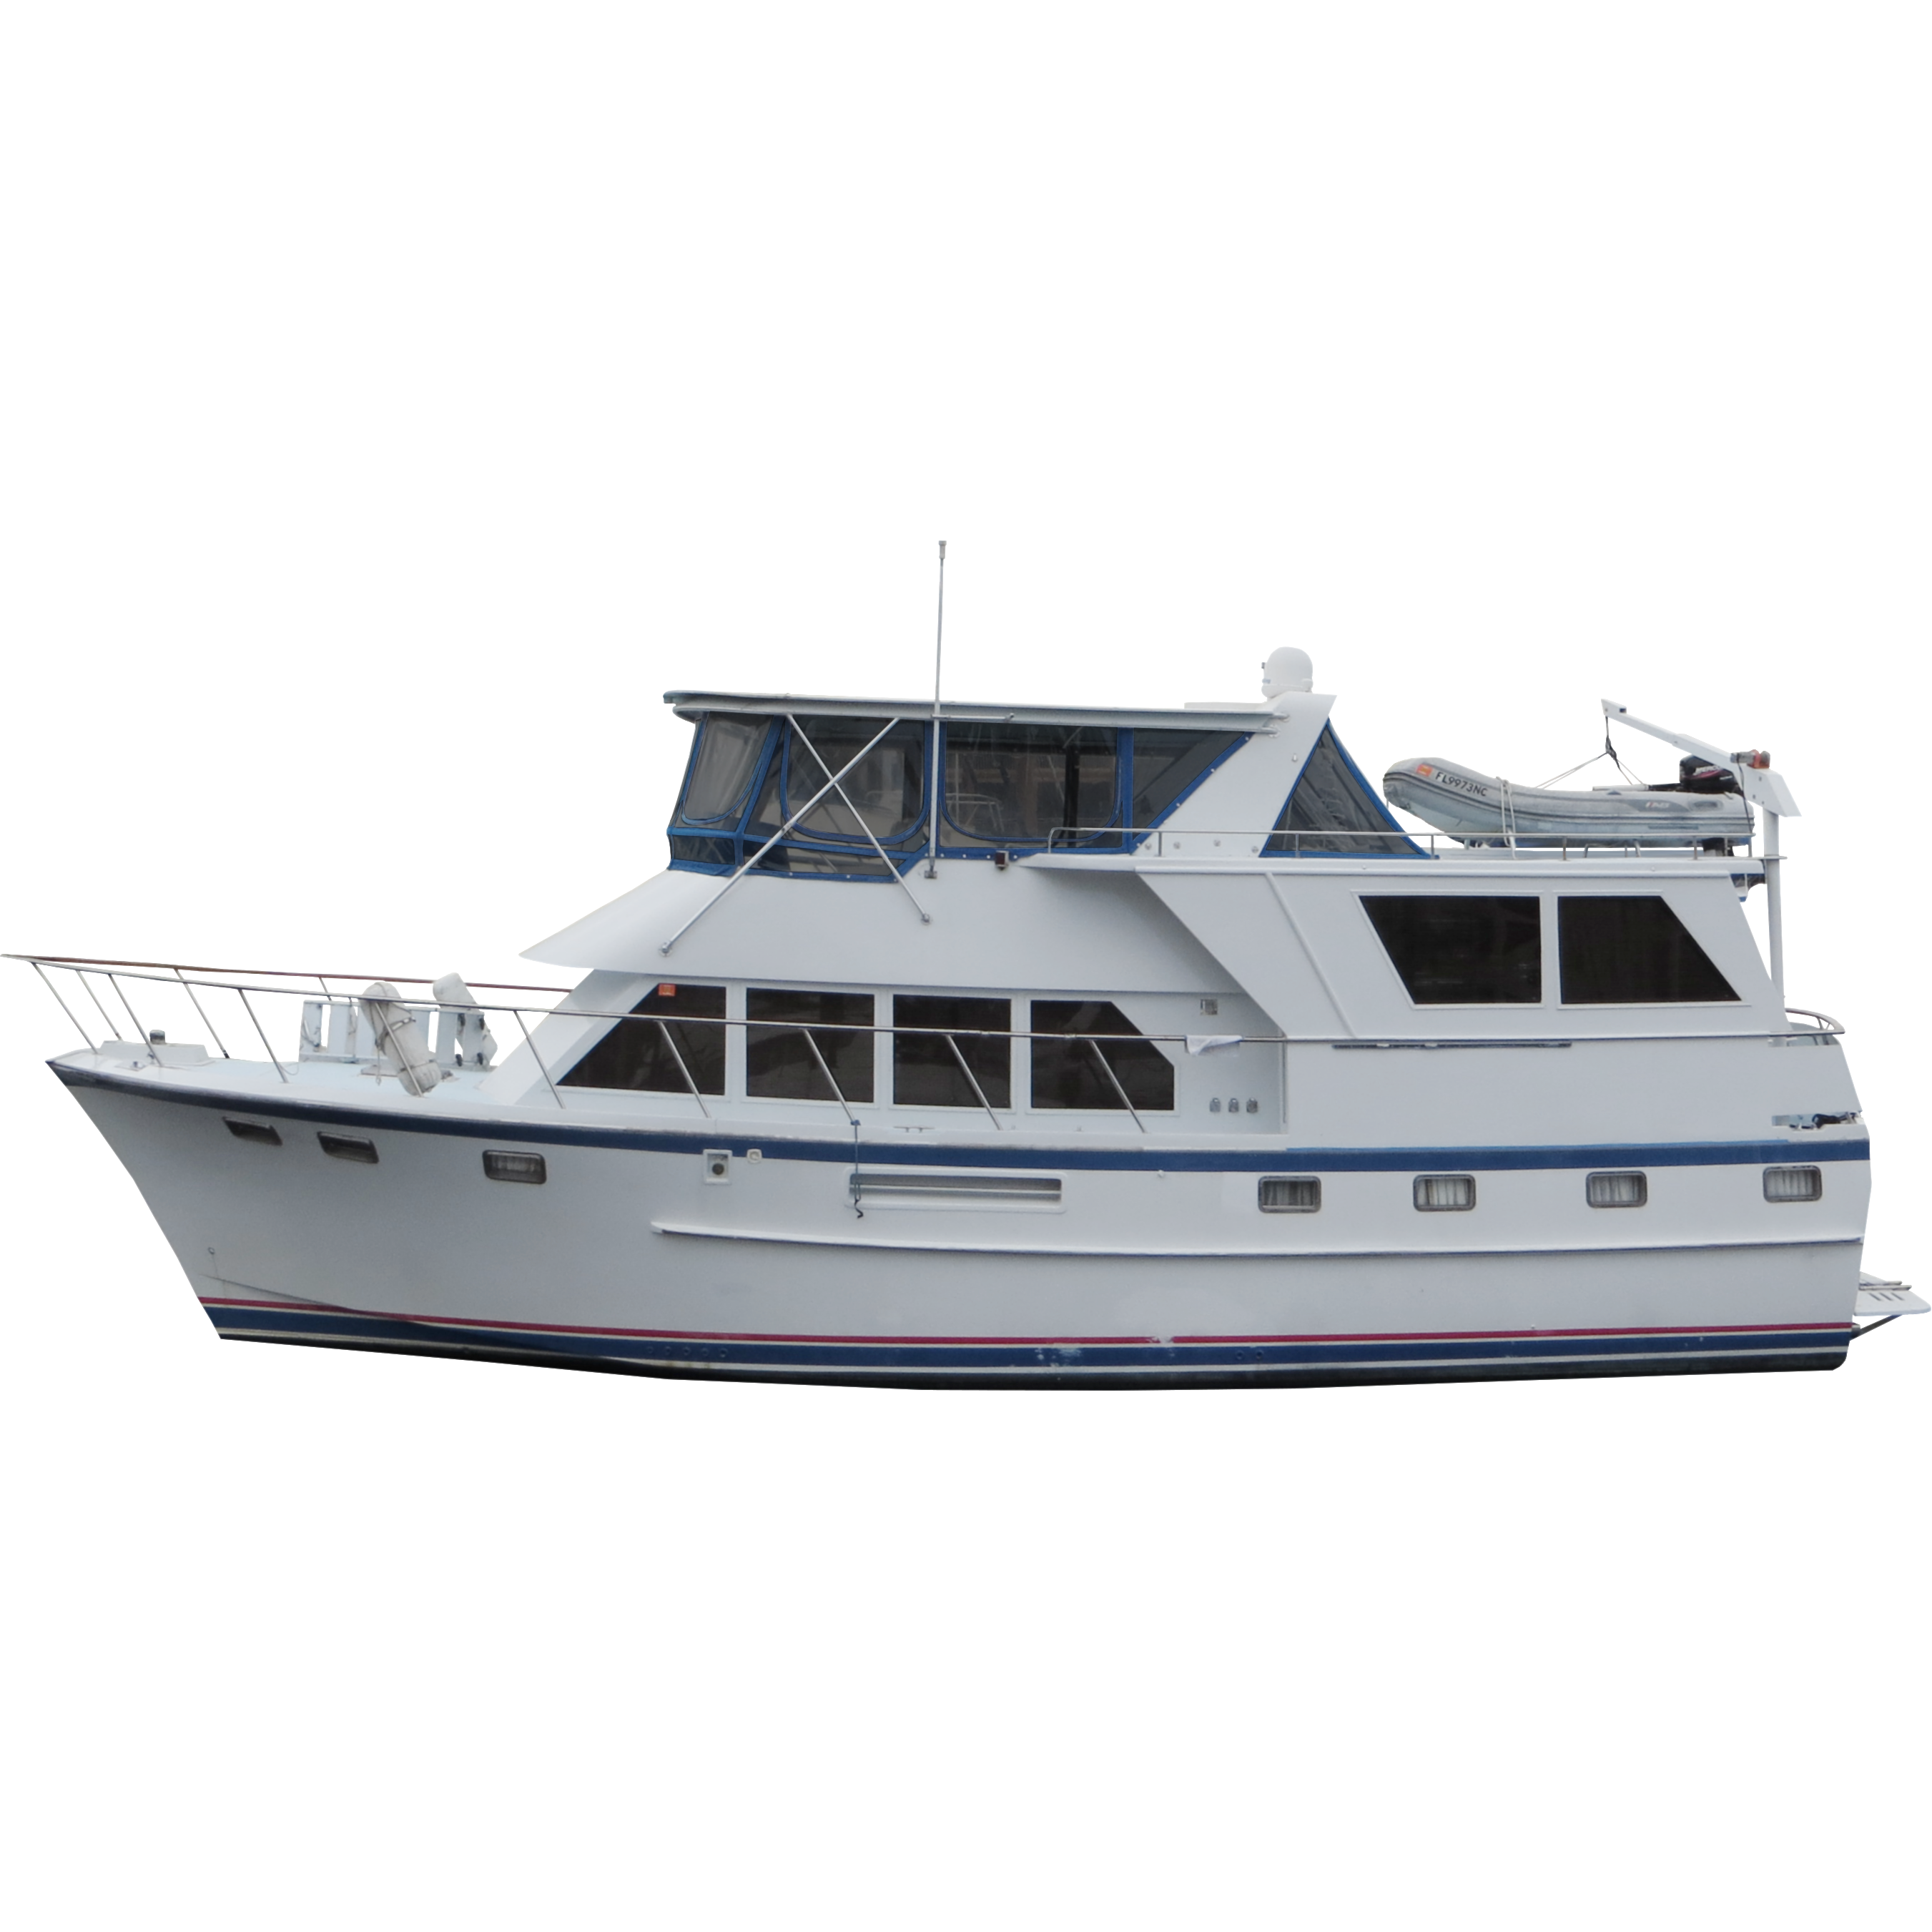 Yacht png water boat. Svg free download